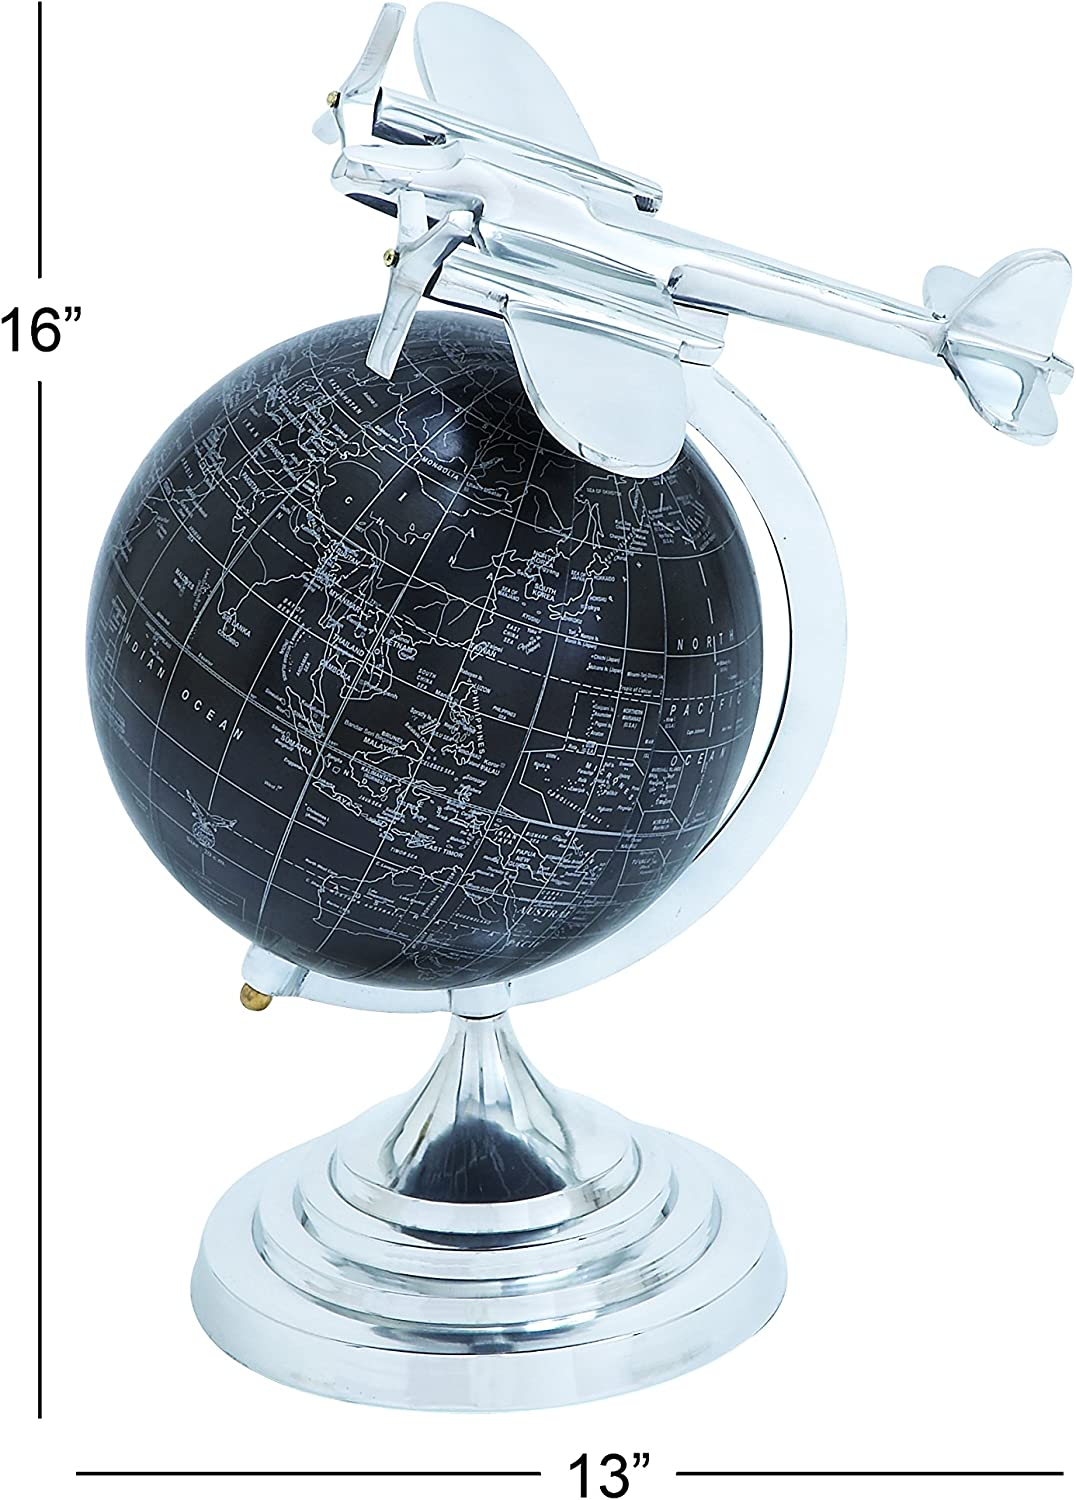 25 x 13 Deco 79 72958 Iron Star Ball Sculpture with Tips and Marble Base Black//White//Green